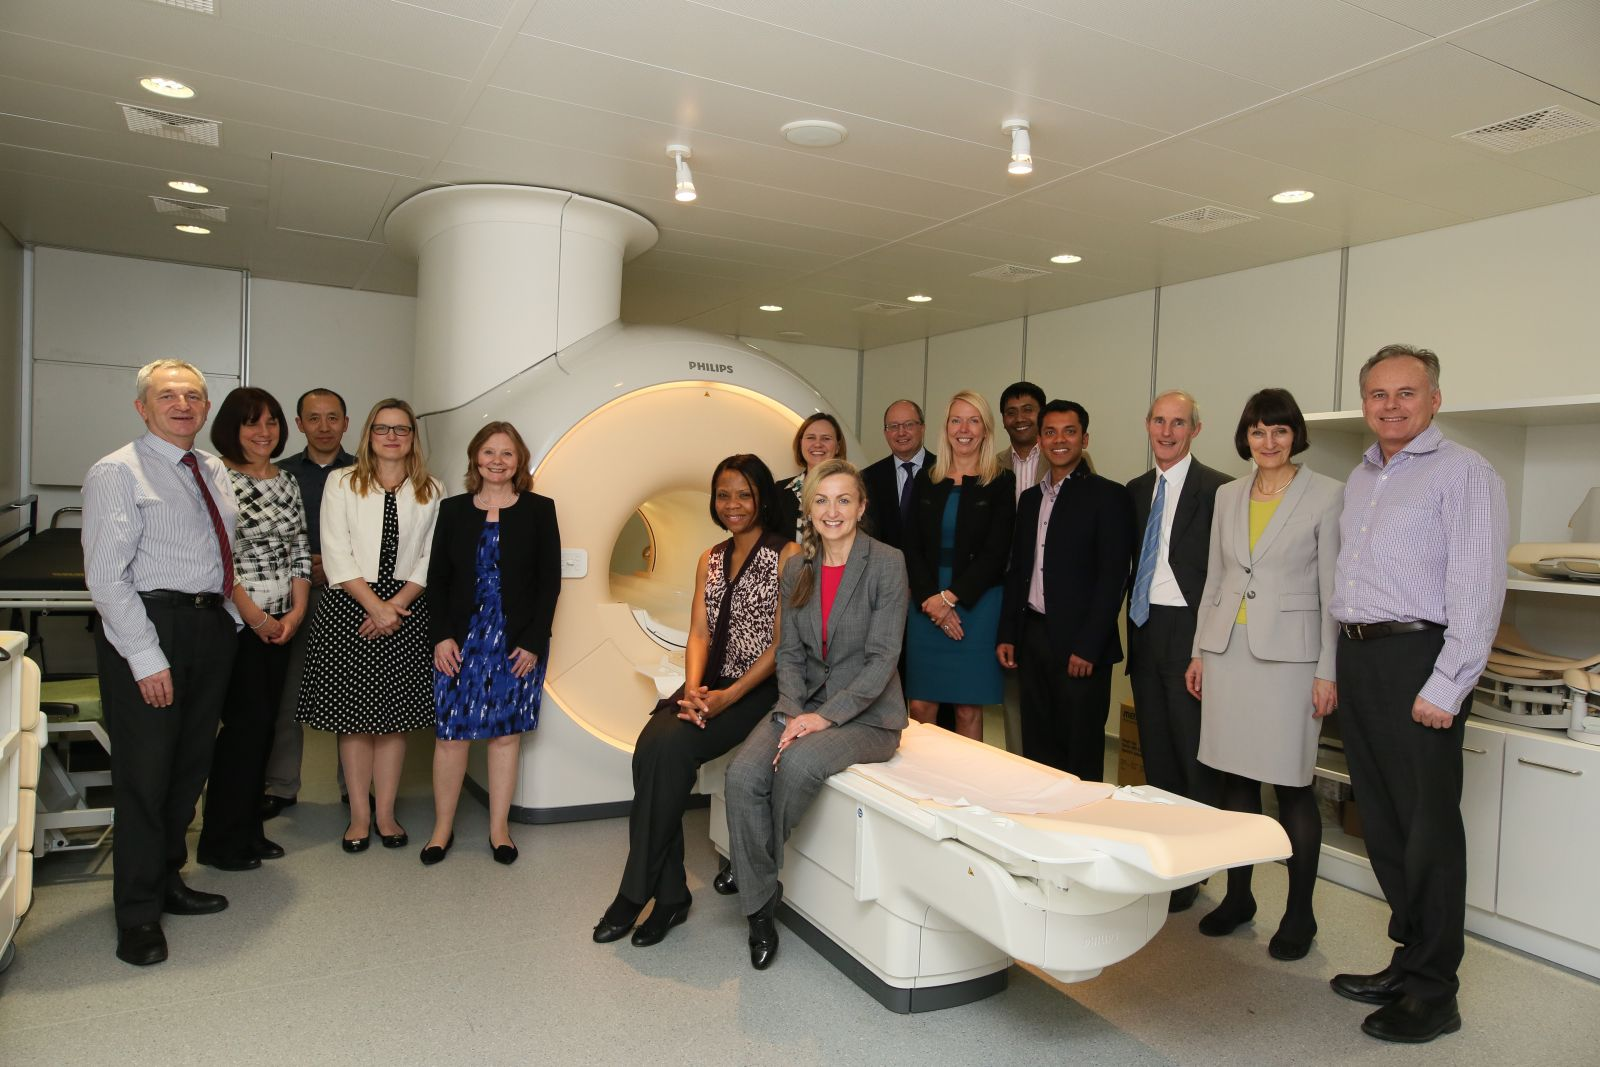 launch of the new MRI scanner at Parkside Hospital